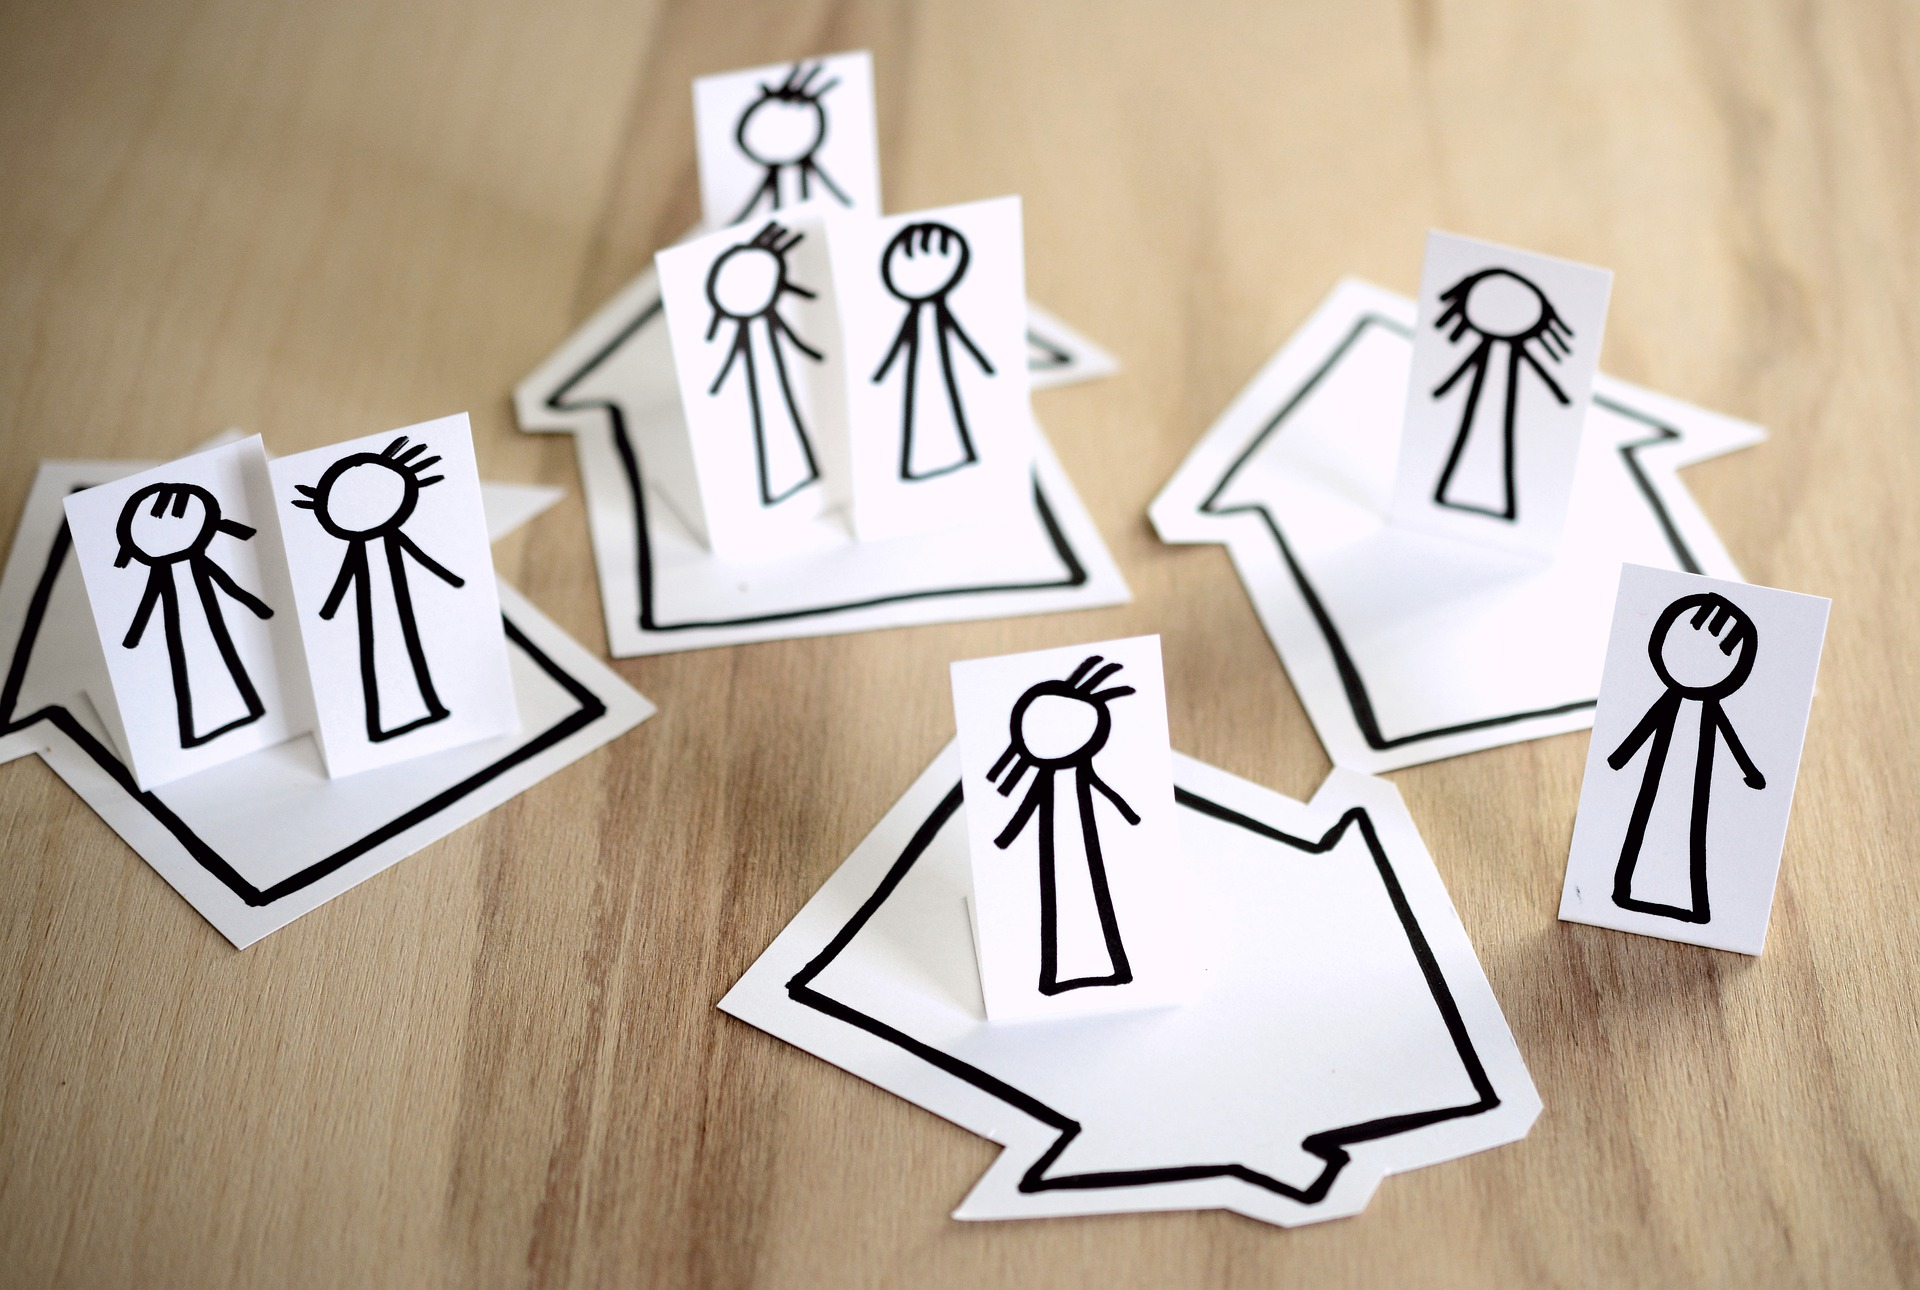 Photo of stick figures propped up on hand-drawn houses. Image by @congerdesign from Pixabay